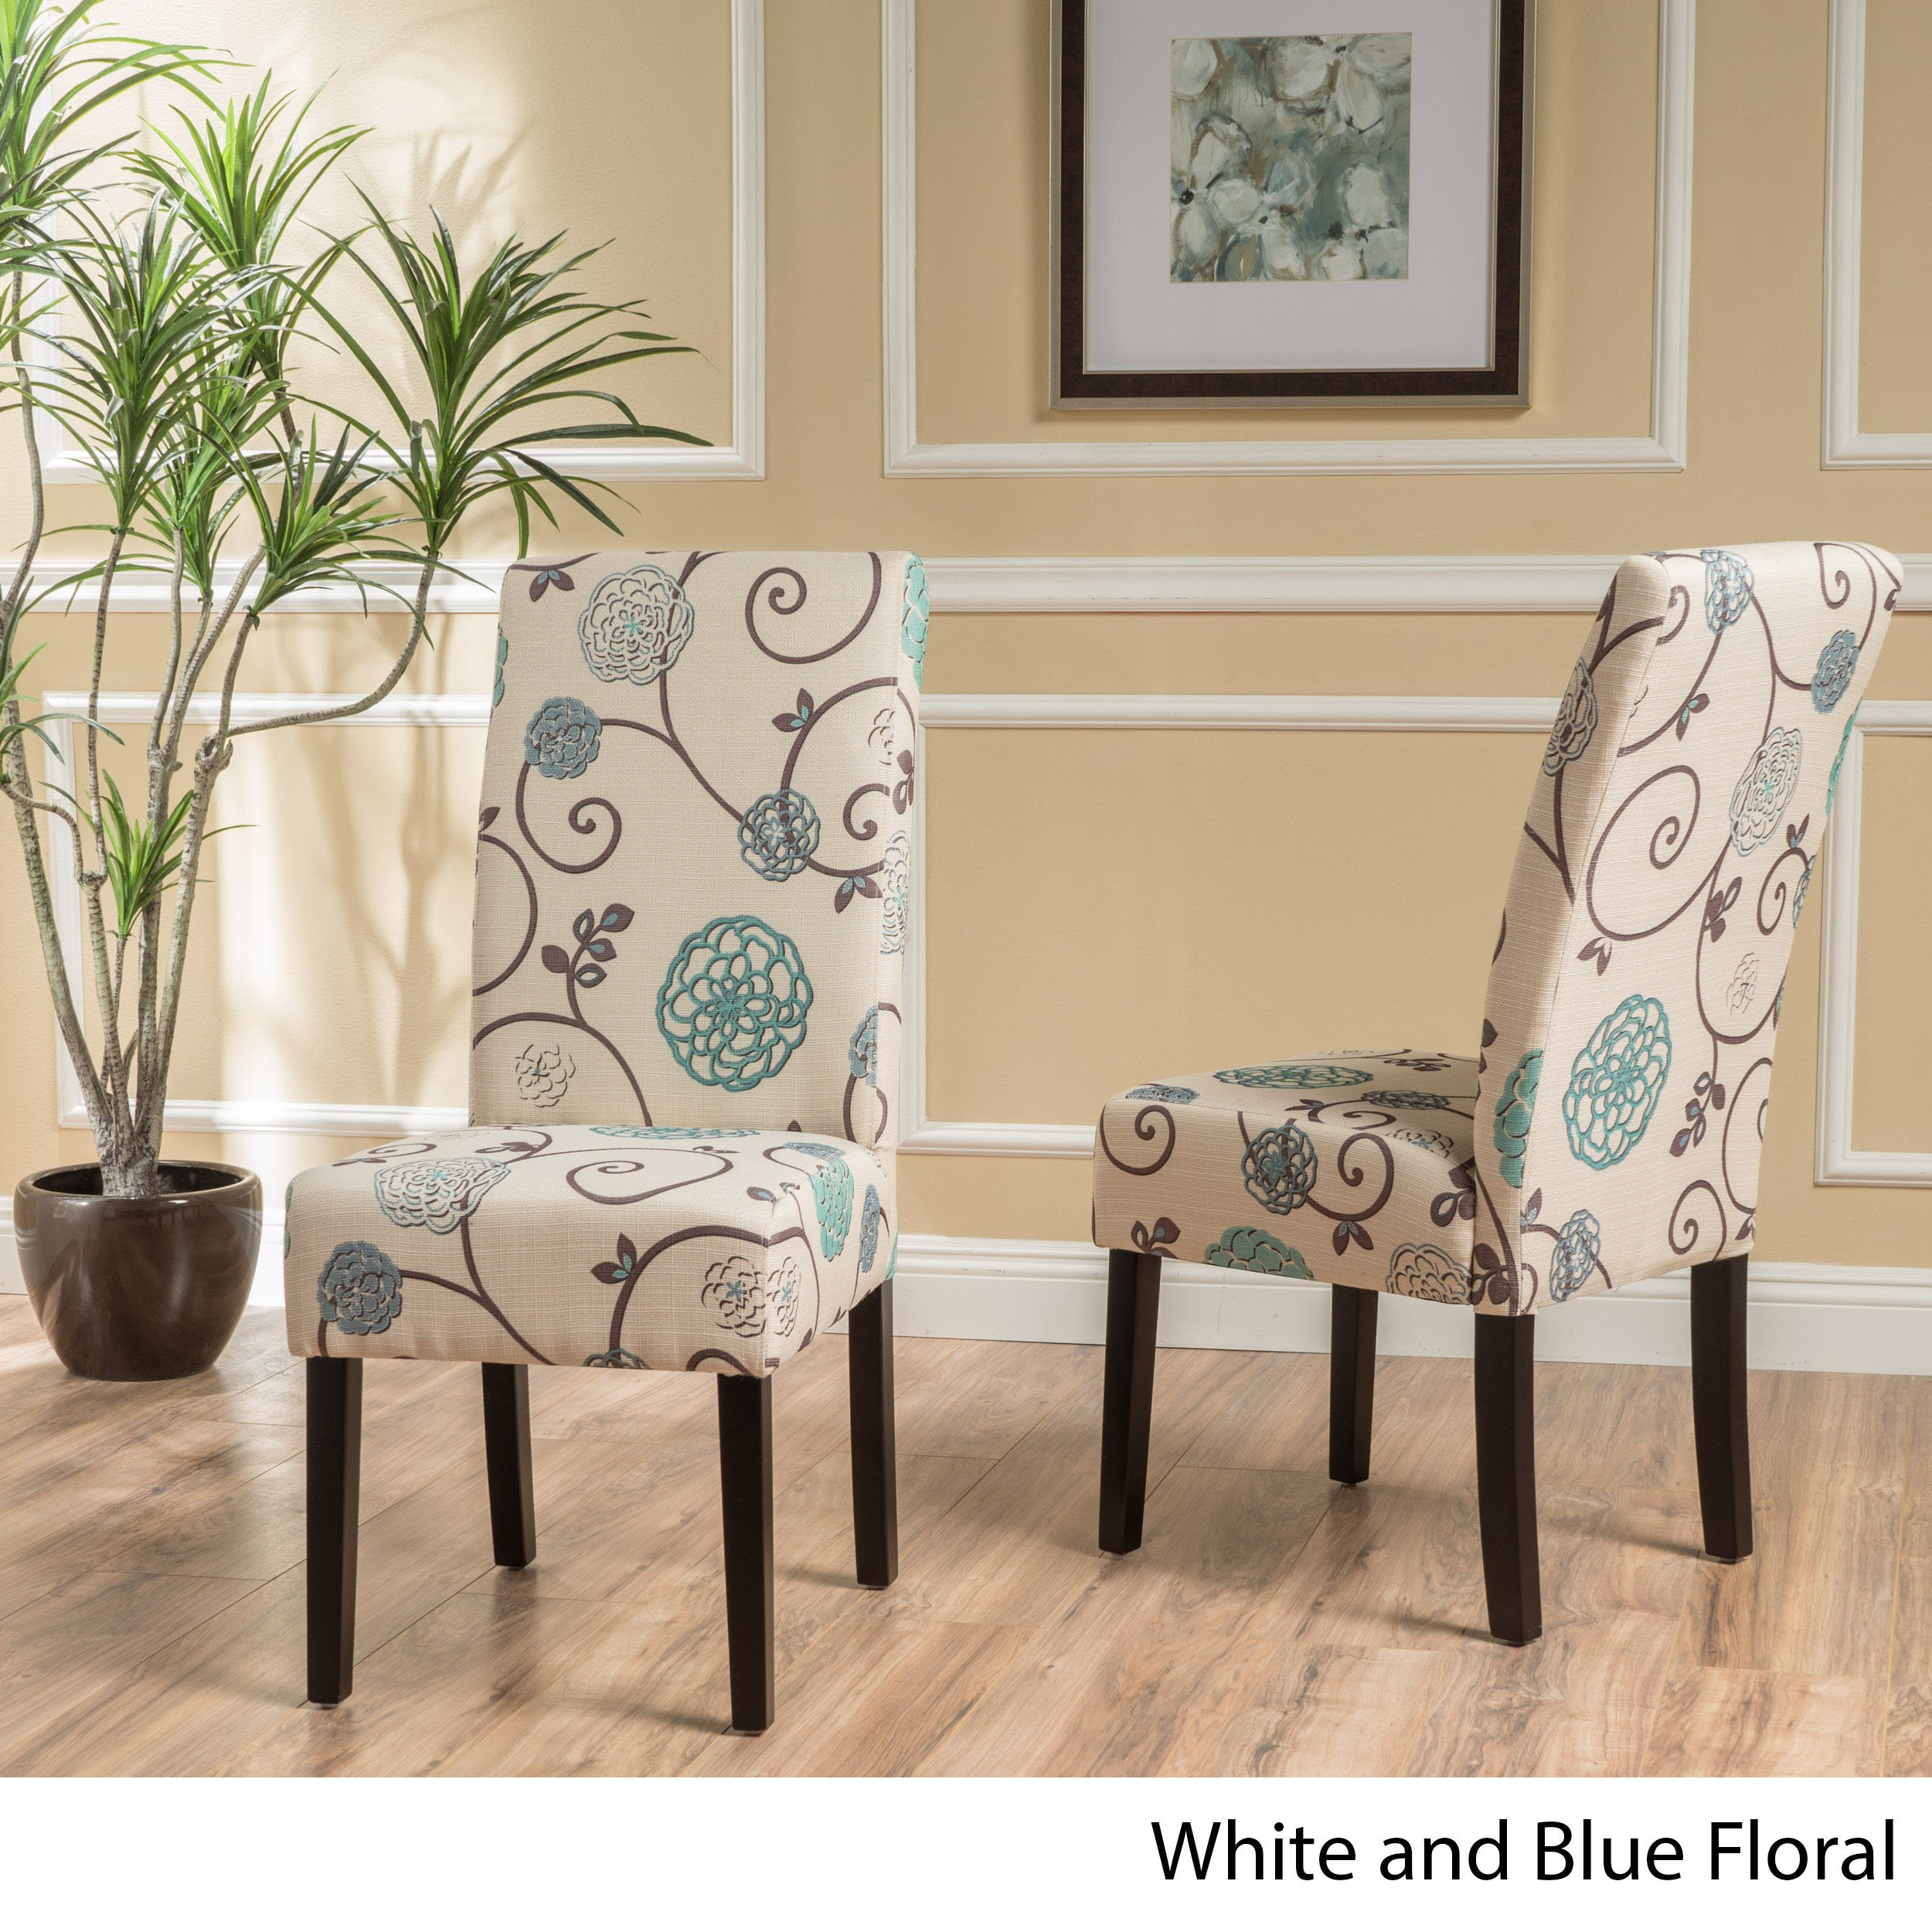 Christopher Knight Home 299448 Pertica Dining Chair Set, White/Blue Floral by Christopher Knight Home